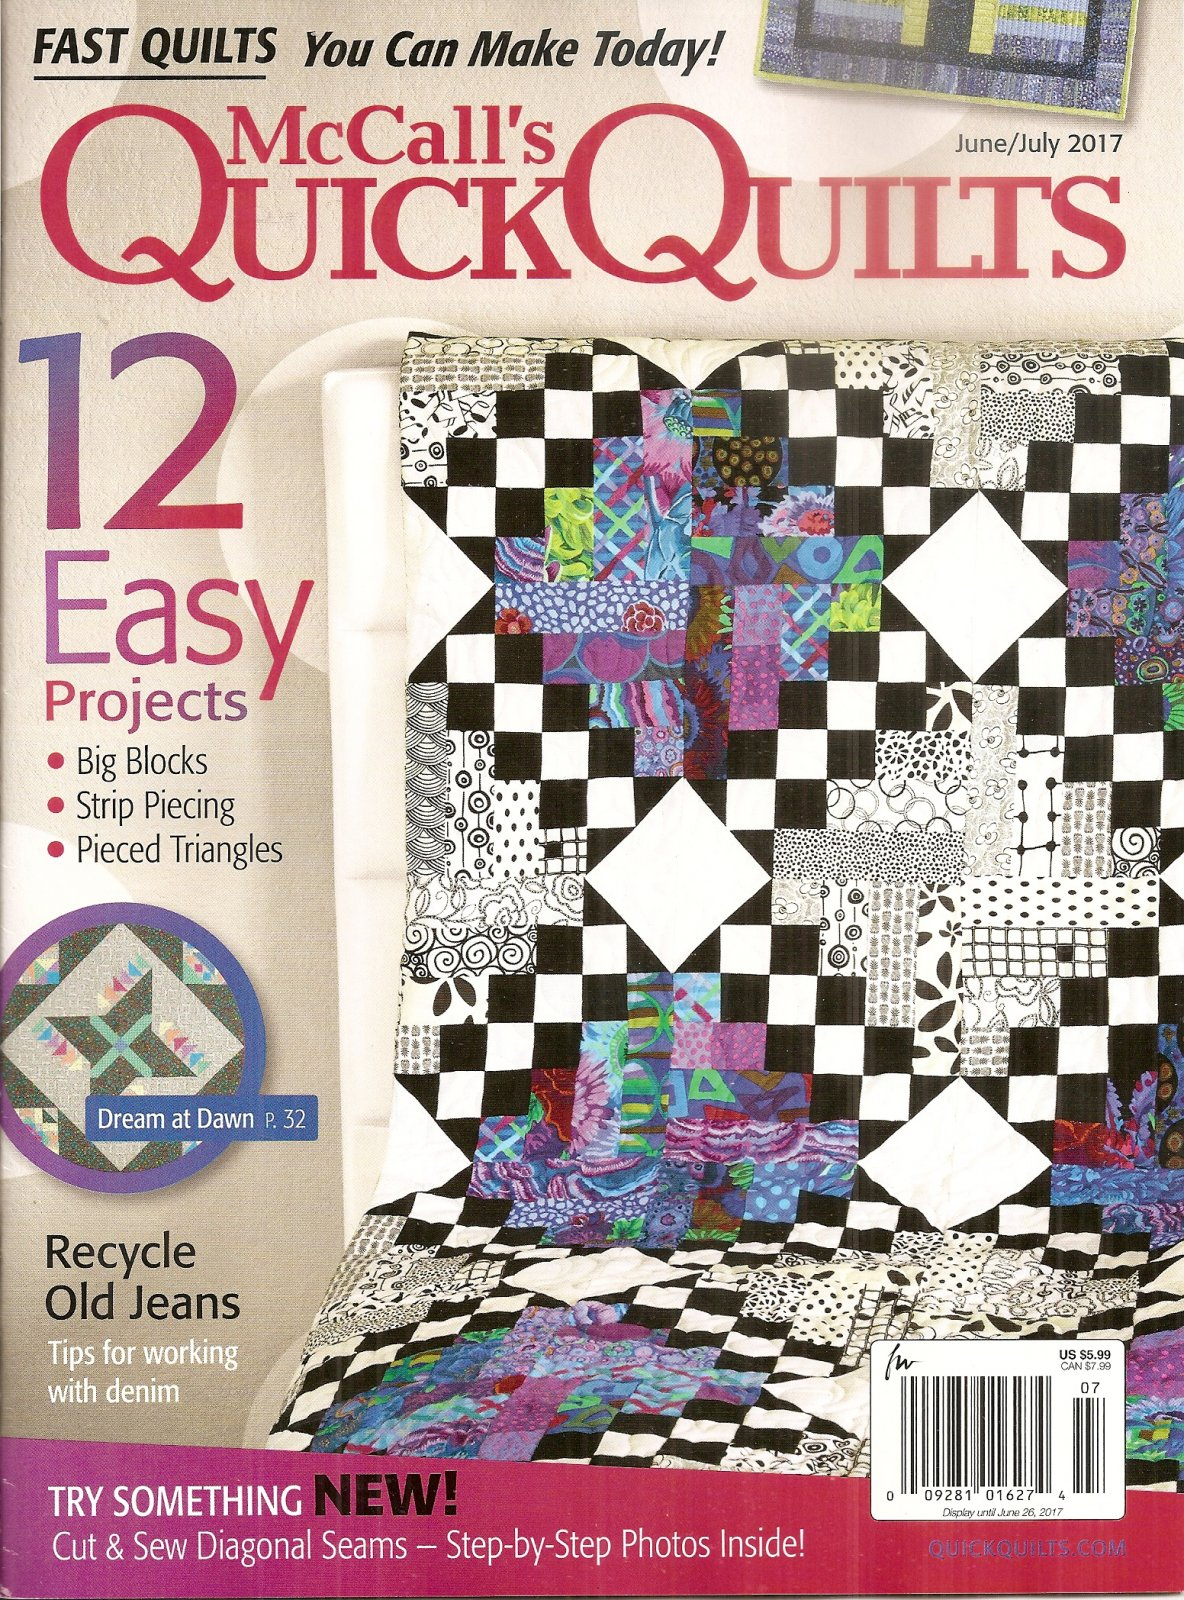 pantograph quilts sew willow leaf for turned the it how quilting thing quilt i from really and studio design a quarter out sashing quick fabric like fq six used fat spring